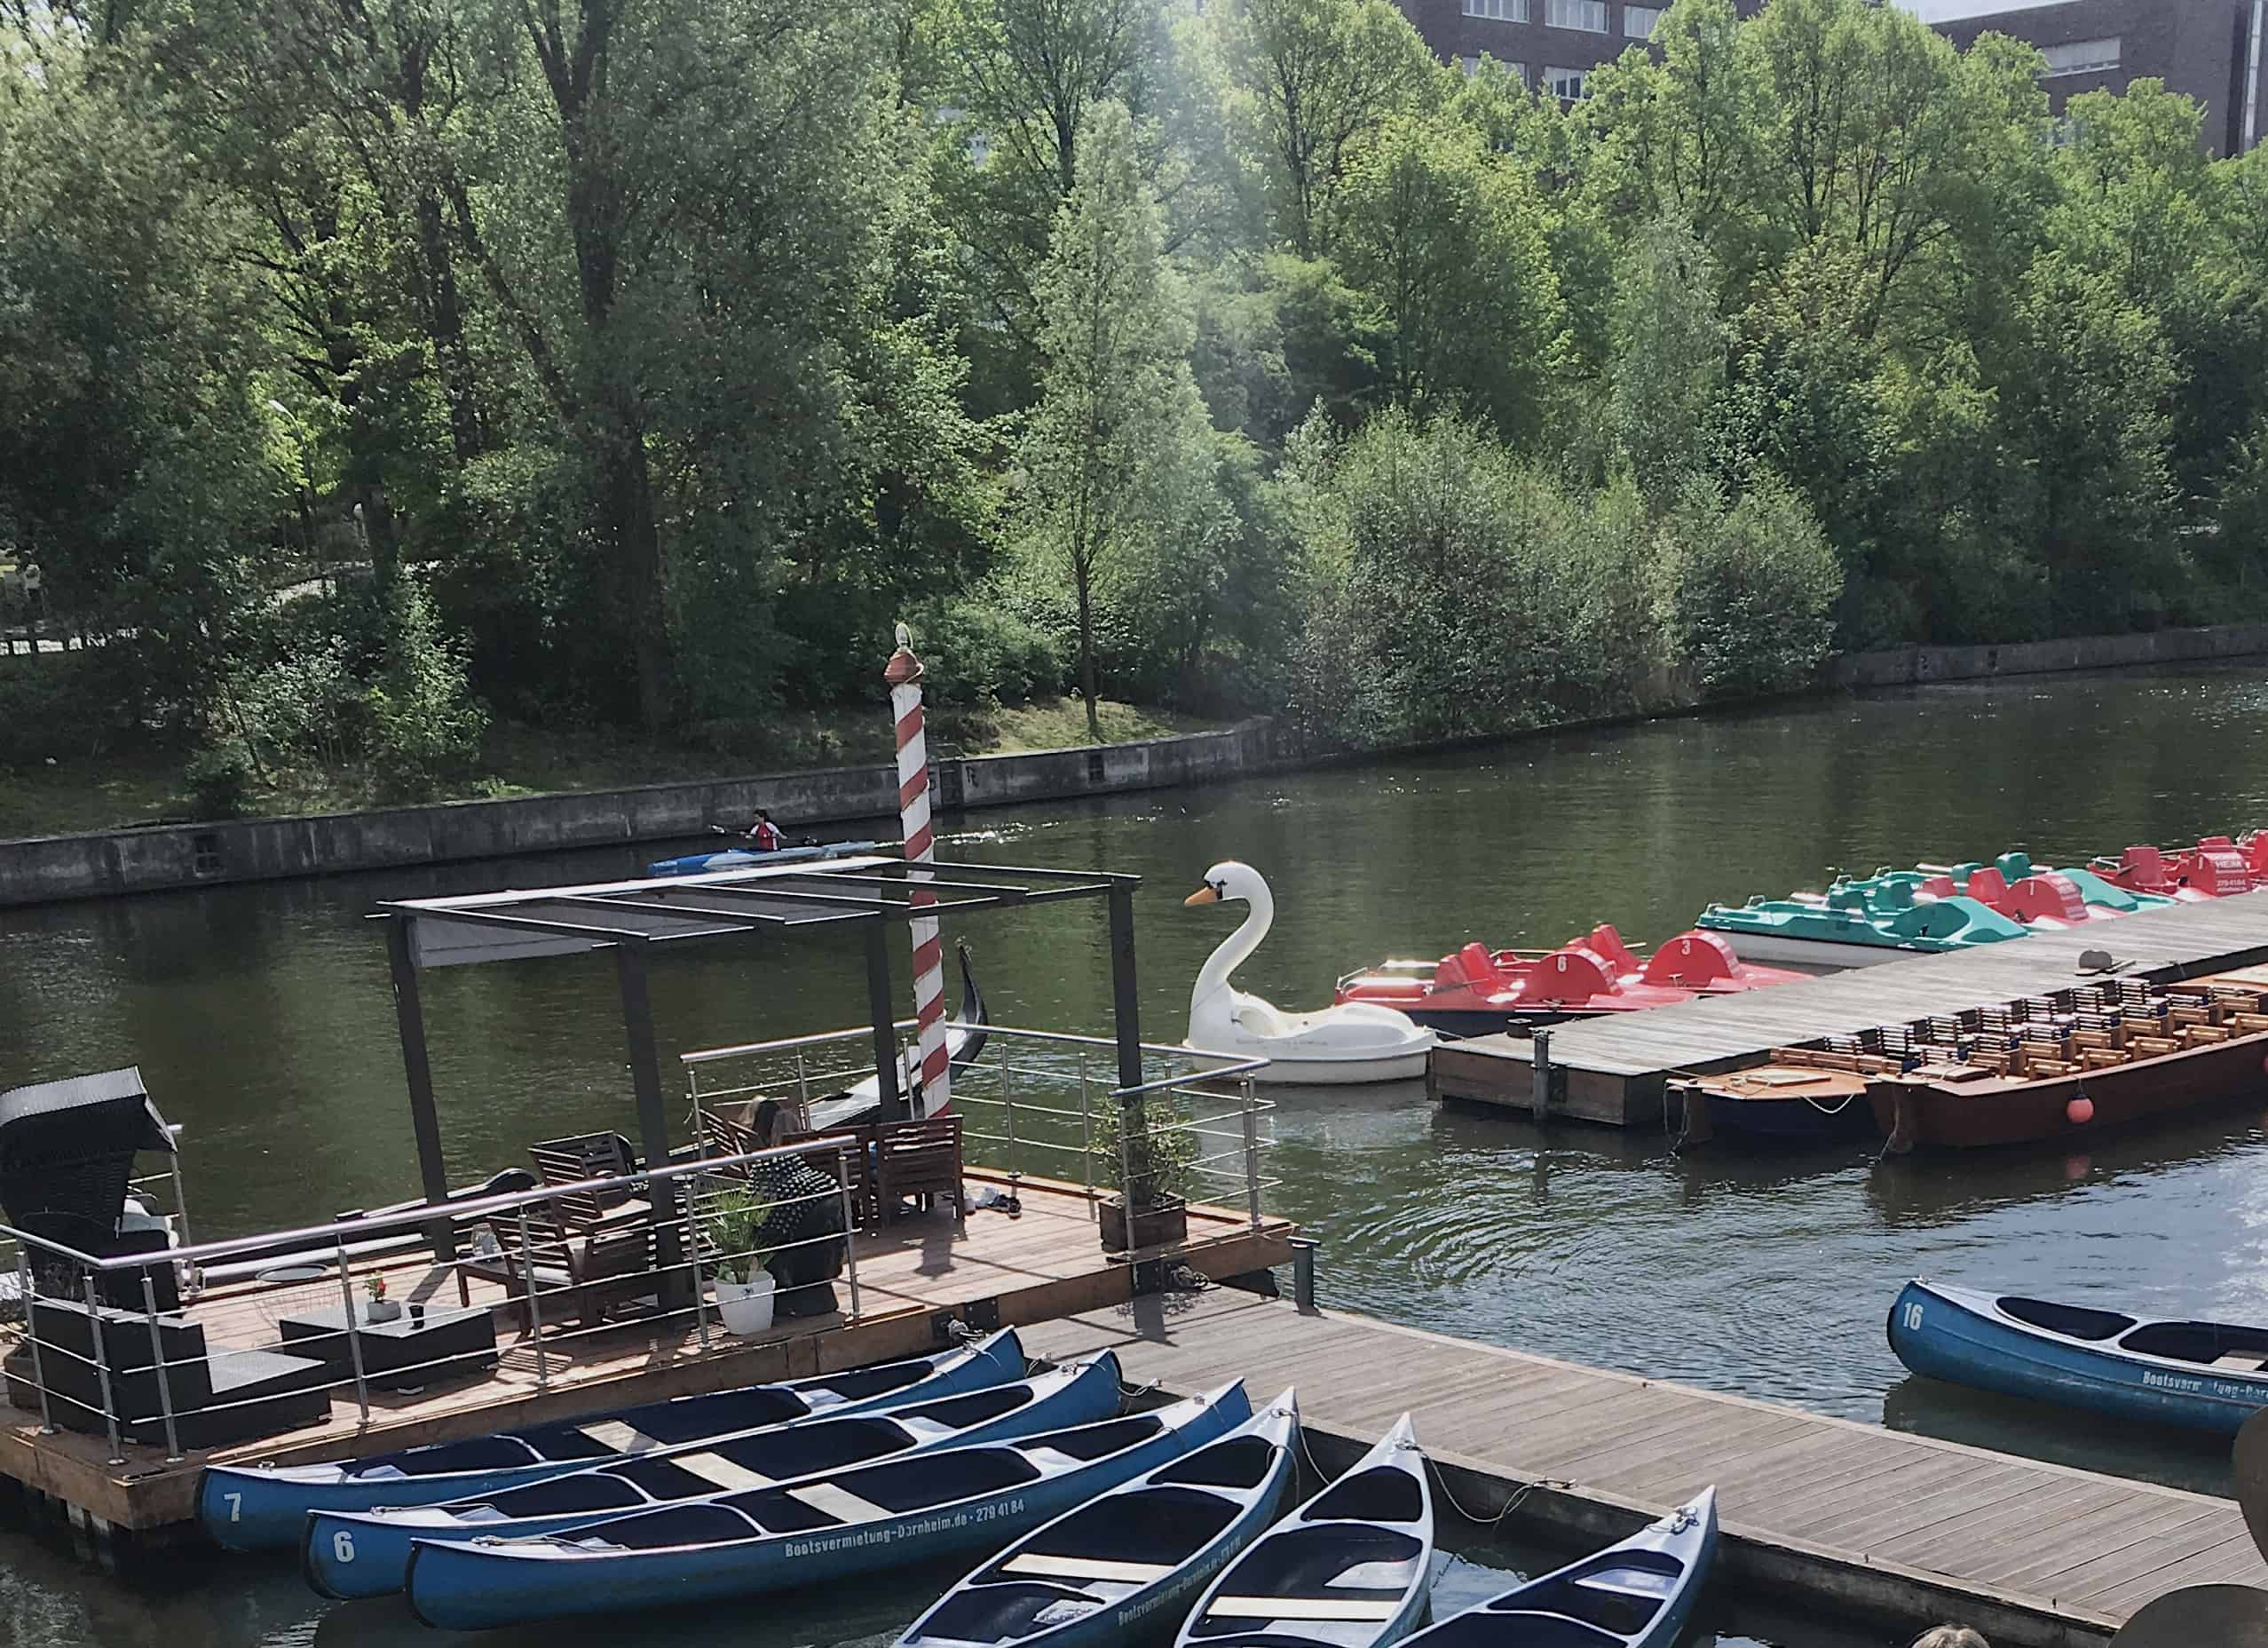 You can rent a canoe, paddleboat, or a swan boat to explore the Alster Lakes/River in Hamburg, Germany - a perfect sunny spring day activity!